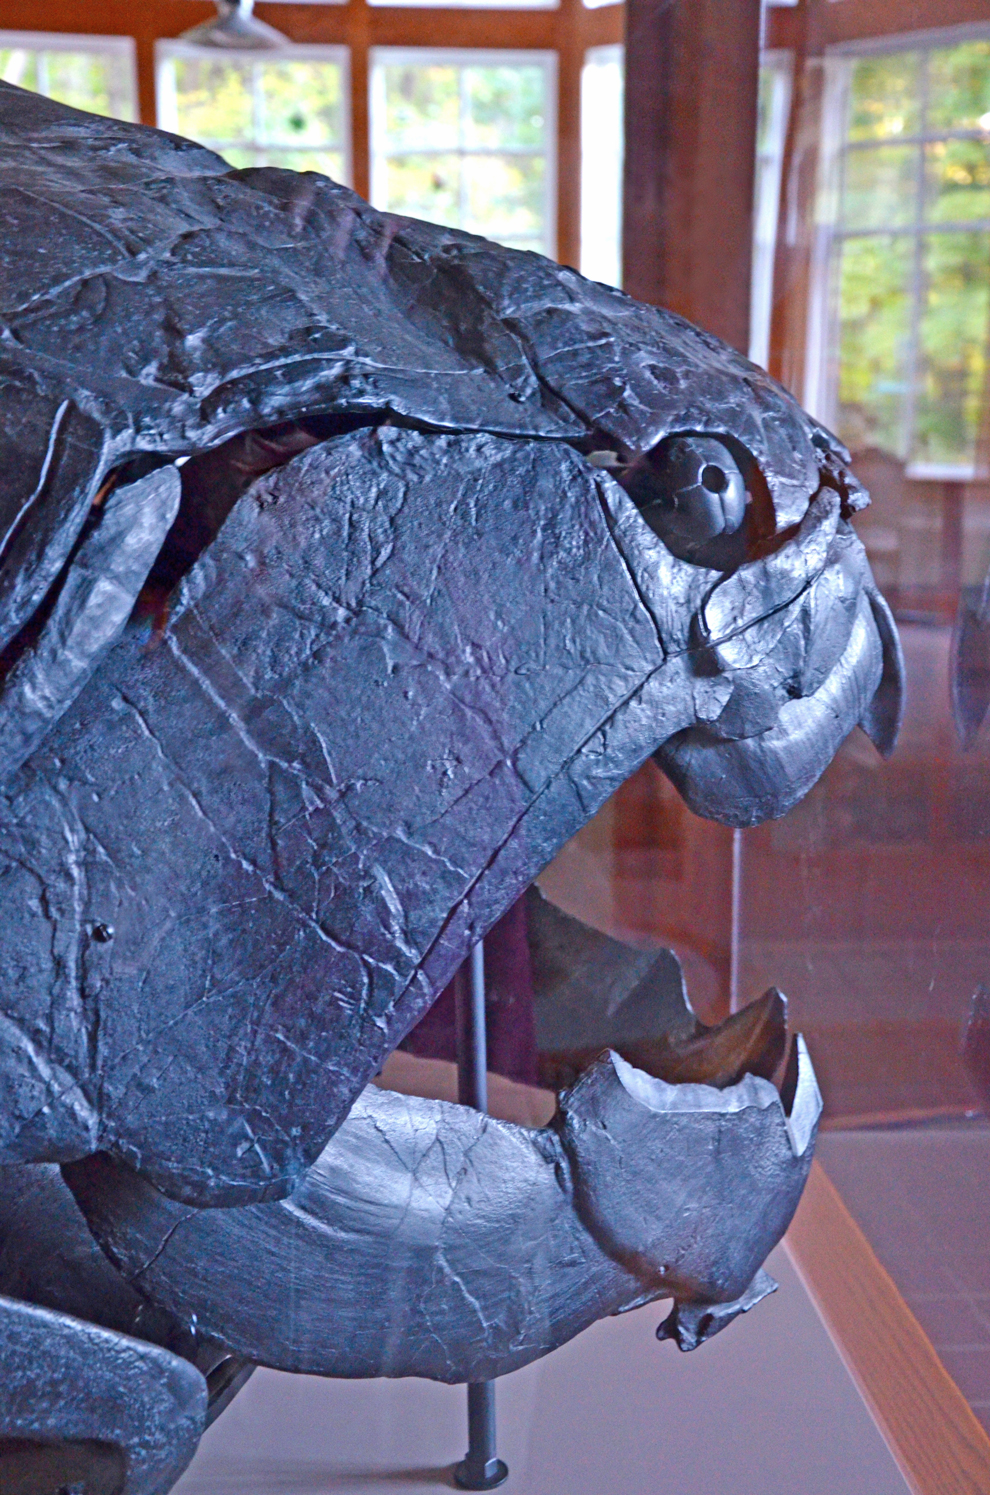 Replica of skiull of Dunkleosteus, a giant ancient fish, at Highbanks Nature Center